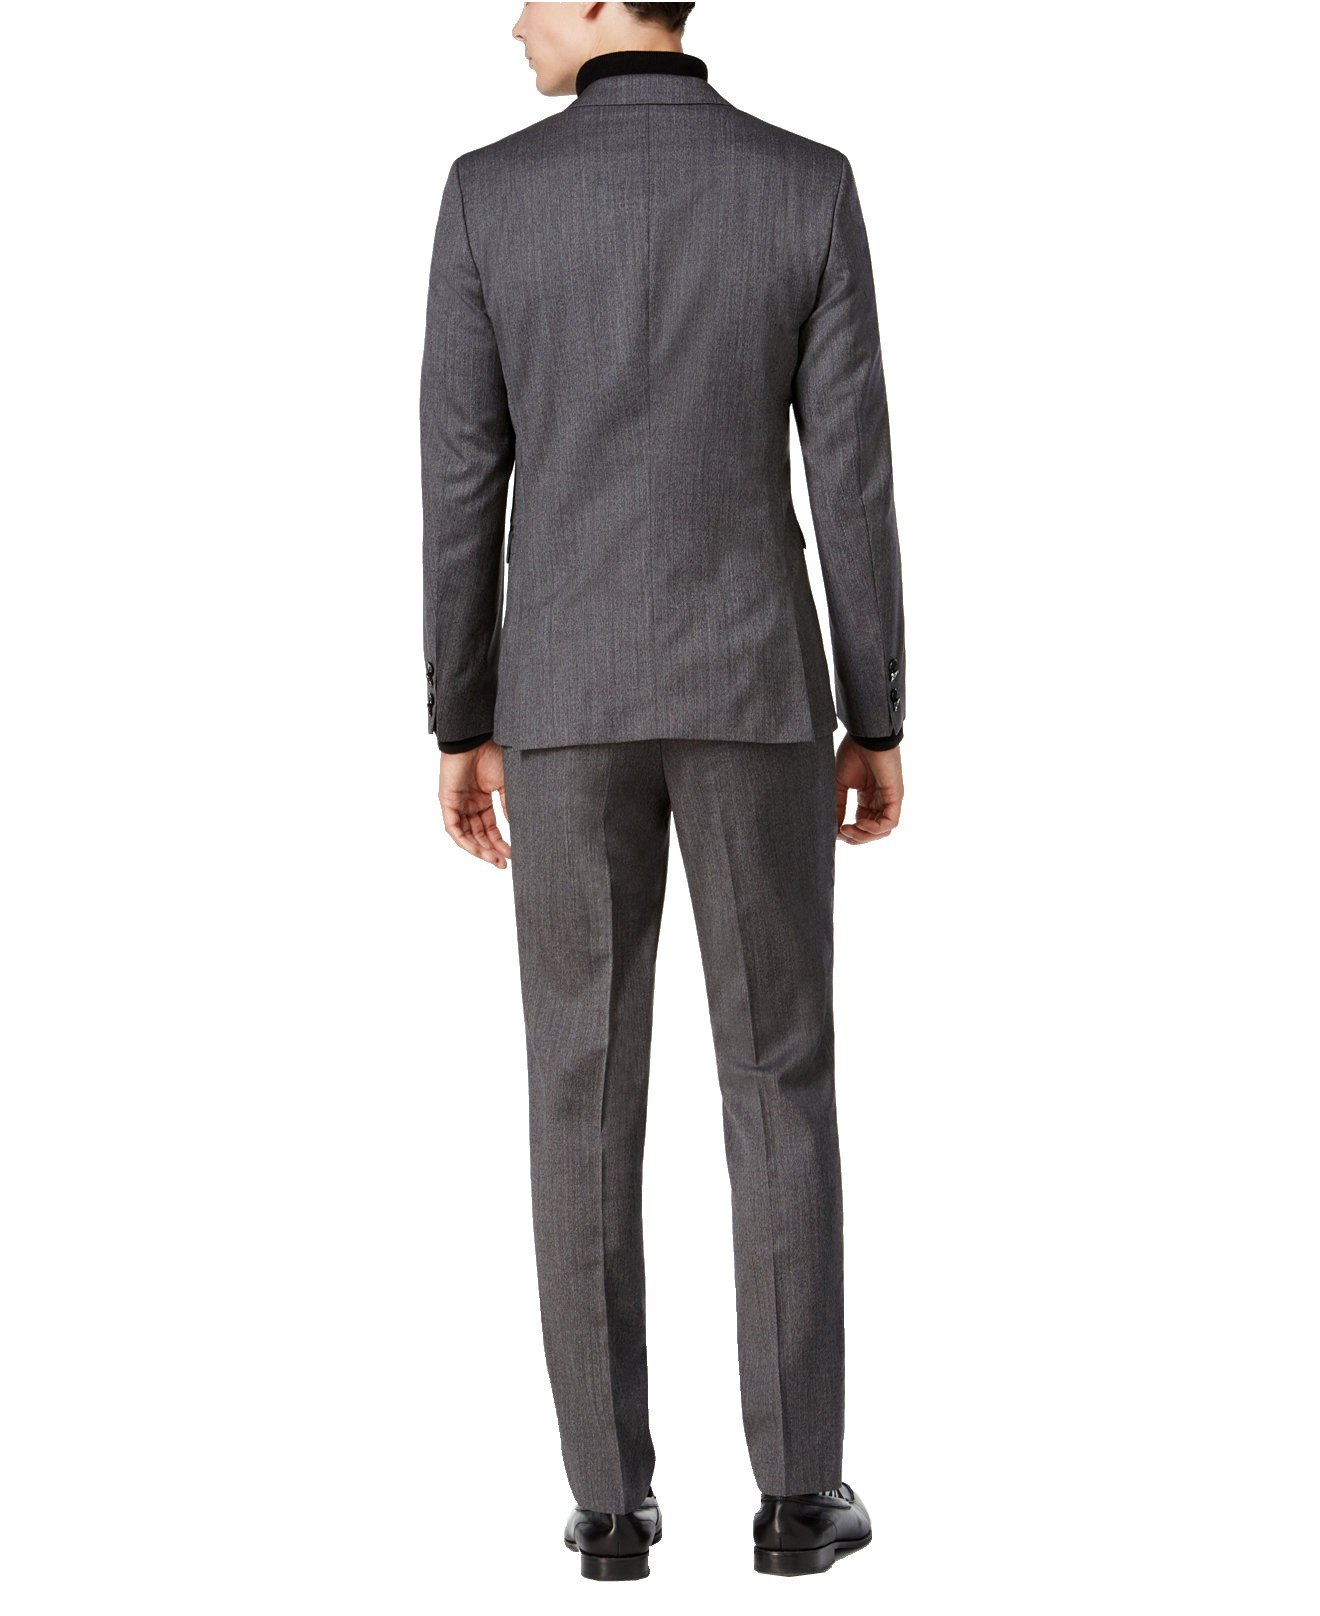 Hugo Boss Astian/Hets Extra Slim Fit 2 Piece Men's 100% Virgin Wool Suit Melange Herringbone 50320624 033 by HUGO (46 Regular USA Jacket / 40 Waist Pants) by HUGO BOSS (Image #3)